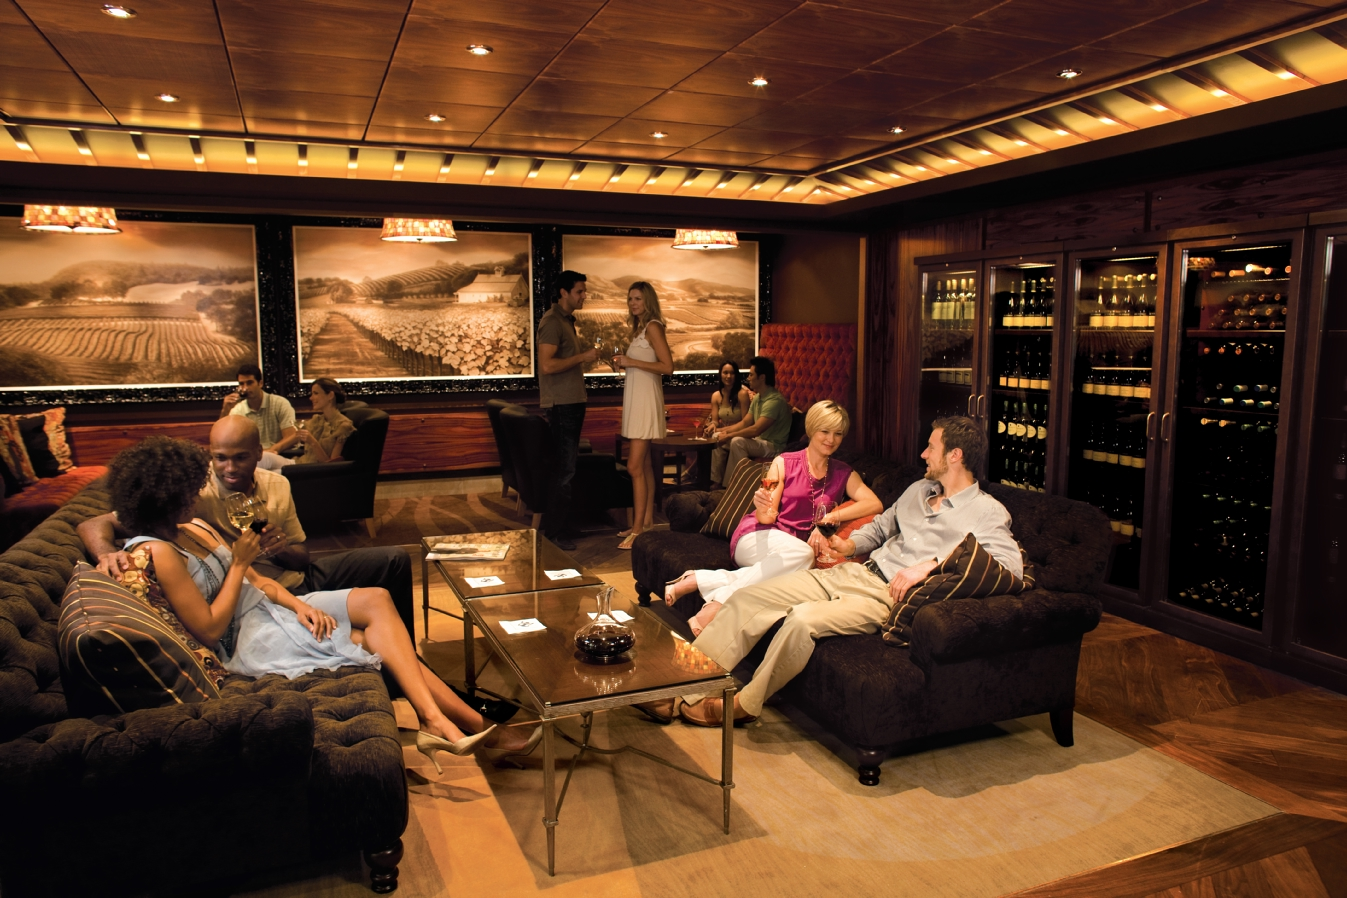 Sheer Luxury on the Largest Cruise Ship, Allure of the Seas 11